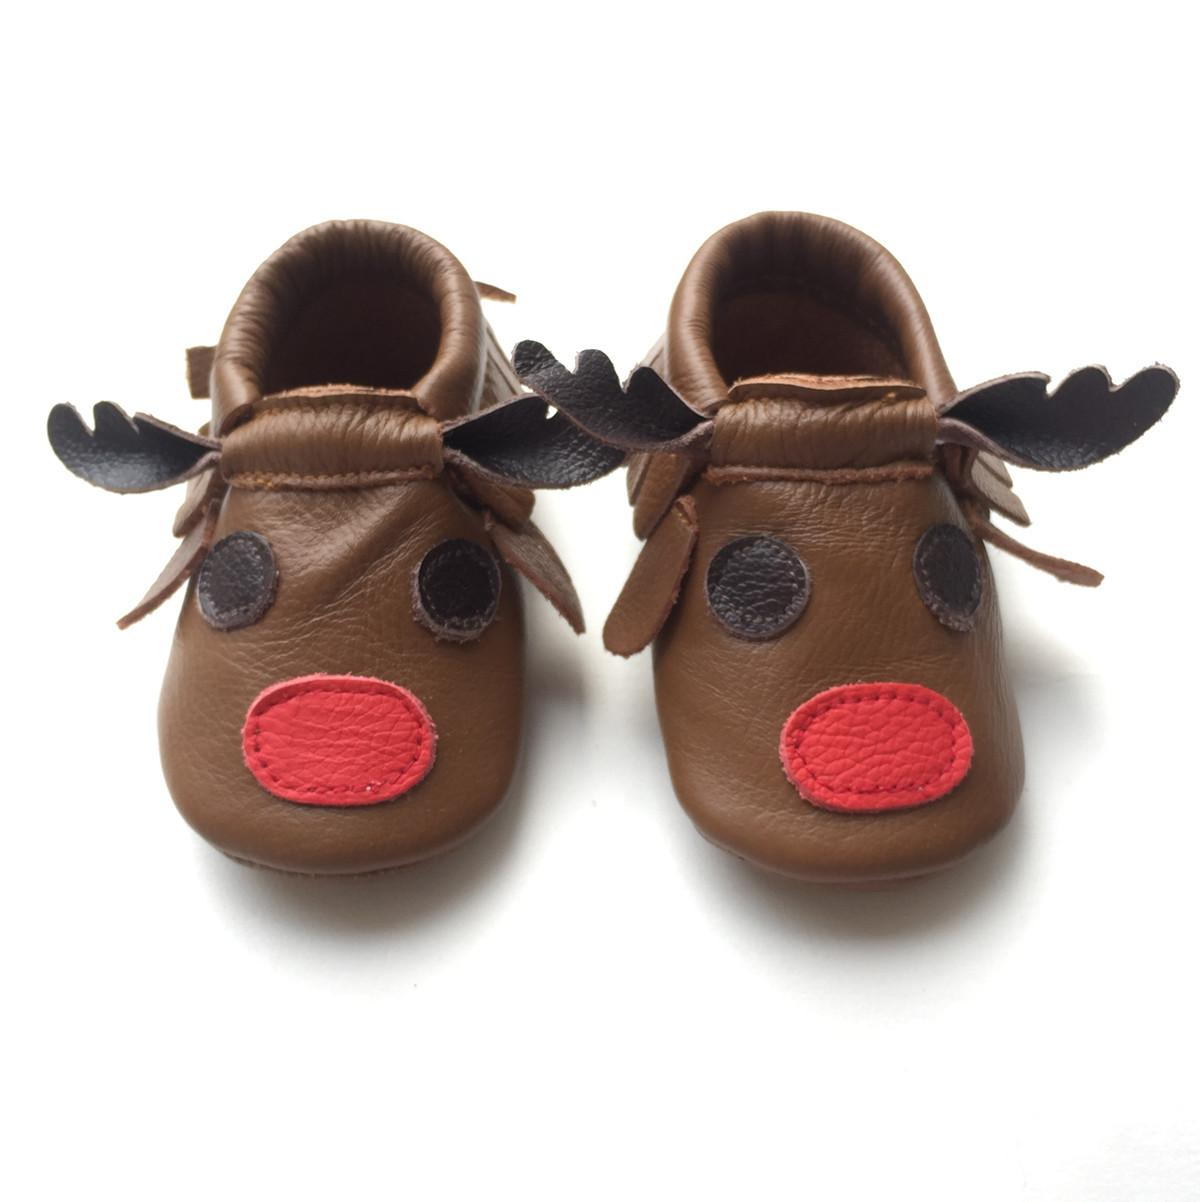 bfe12271f 2019 2015 Christmas Baby Moccasins Reindeer Moccasins Soft Leather Baby  Fringe Shoes Fashionable Toddler Shoes Ins Hot Product From Flyinghihi